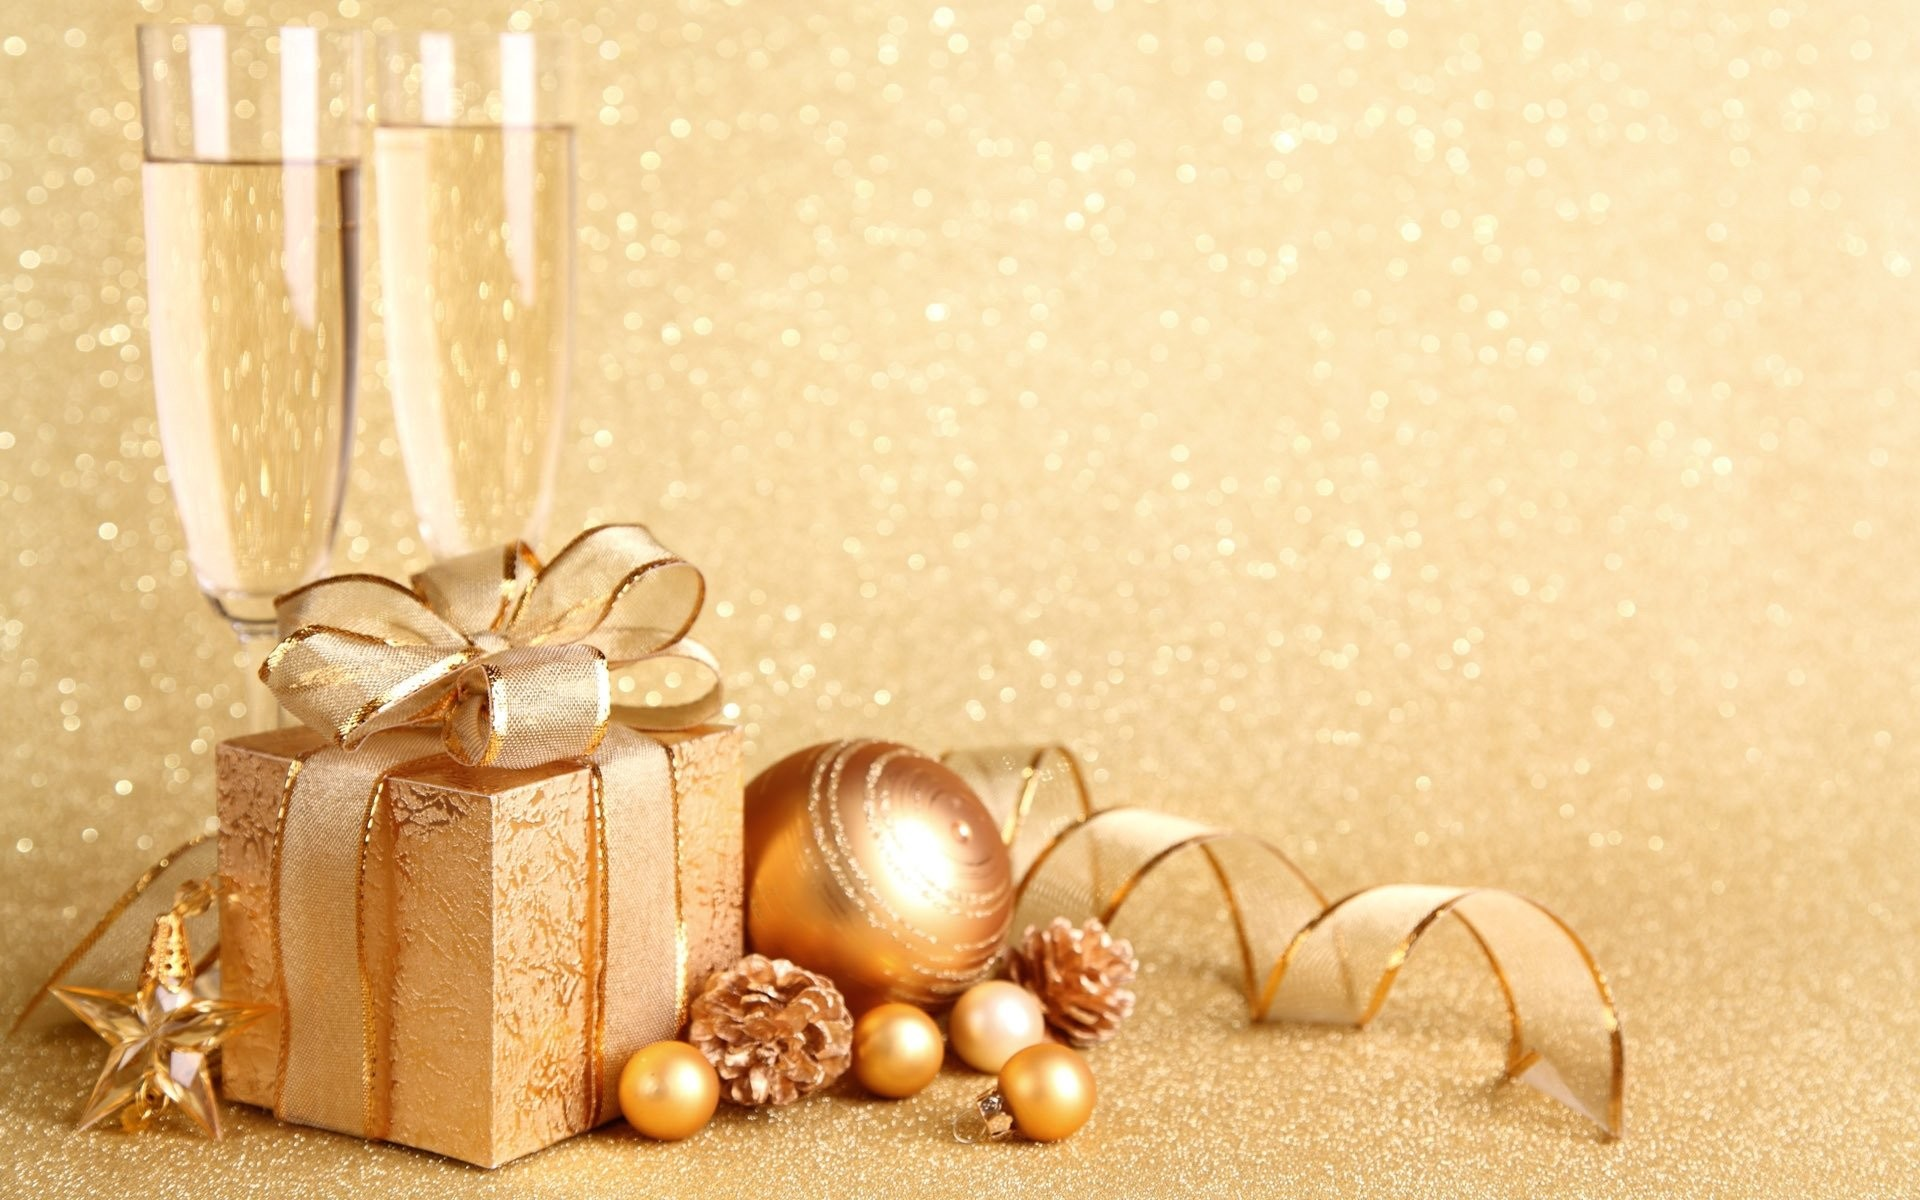 Christmas Party Backgrounds Part – 20: Jpg Party Holiday  Background